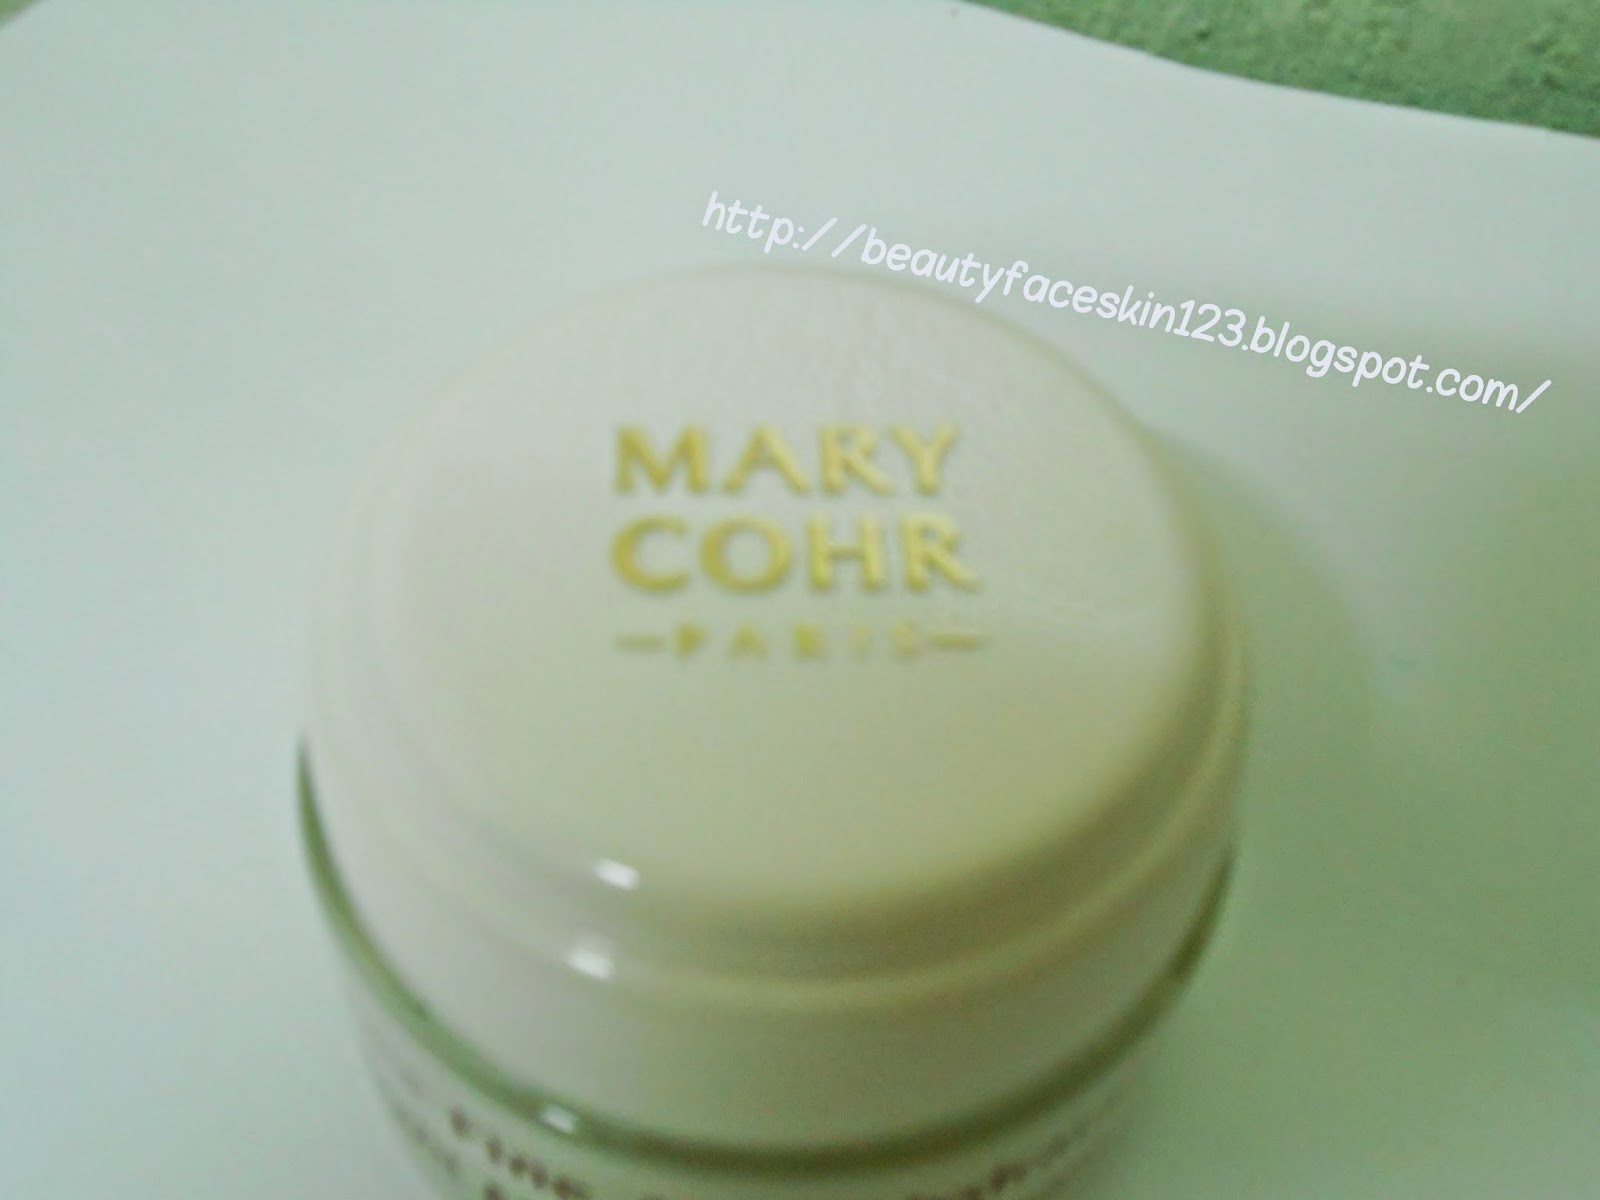 MARY COHR LIGHT MOISTURISING CREAM